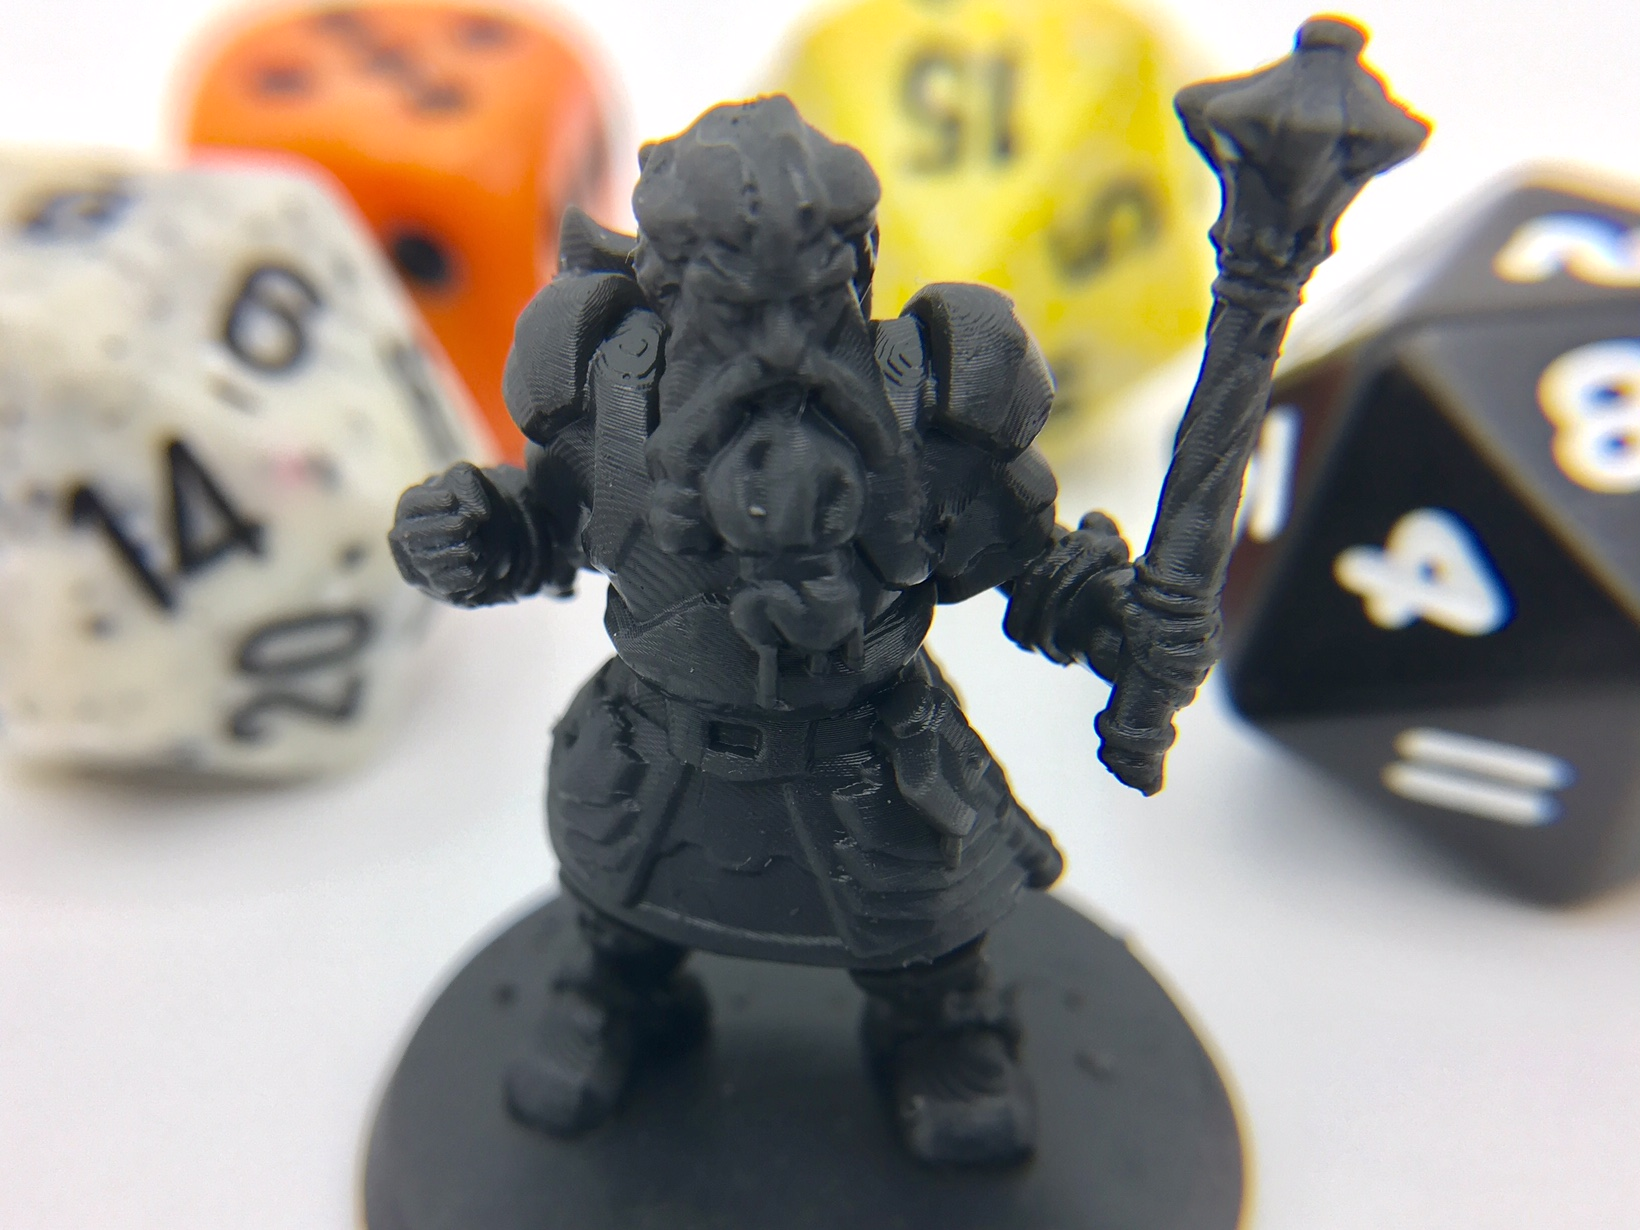 Hero Forge 3D model miniature edited in Meshmixer for 3D printing of custom D&D tabletop gaming character